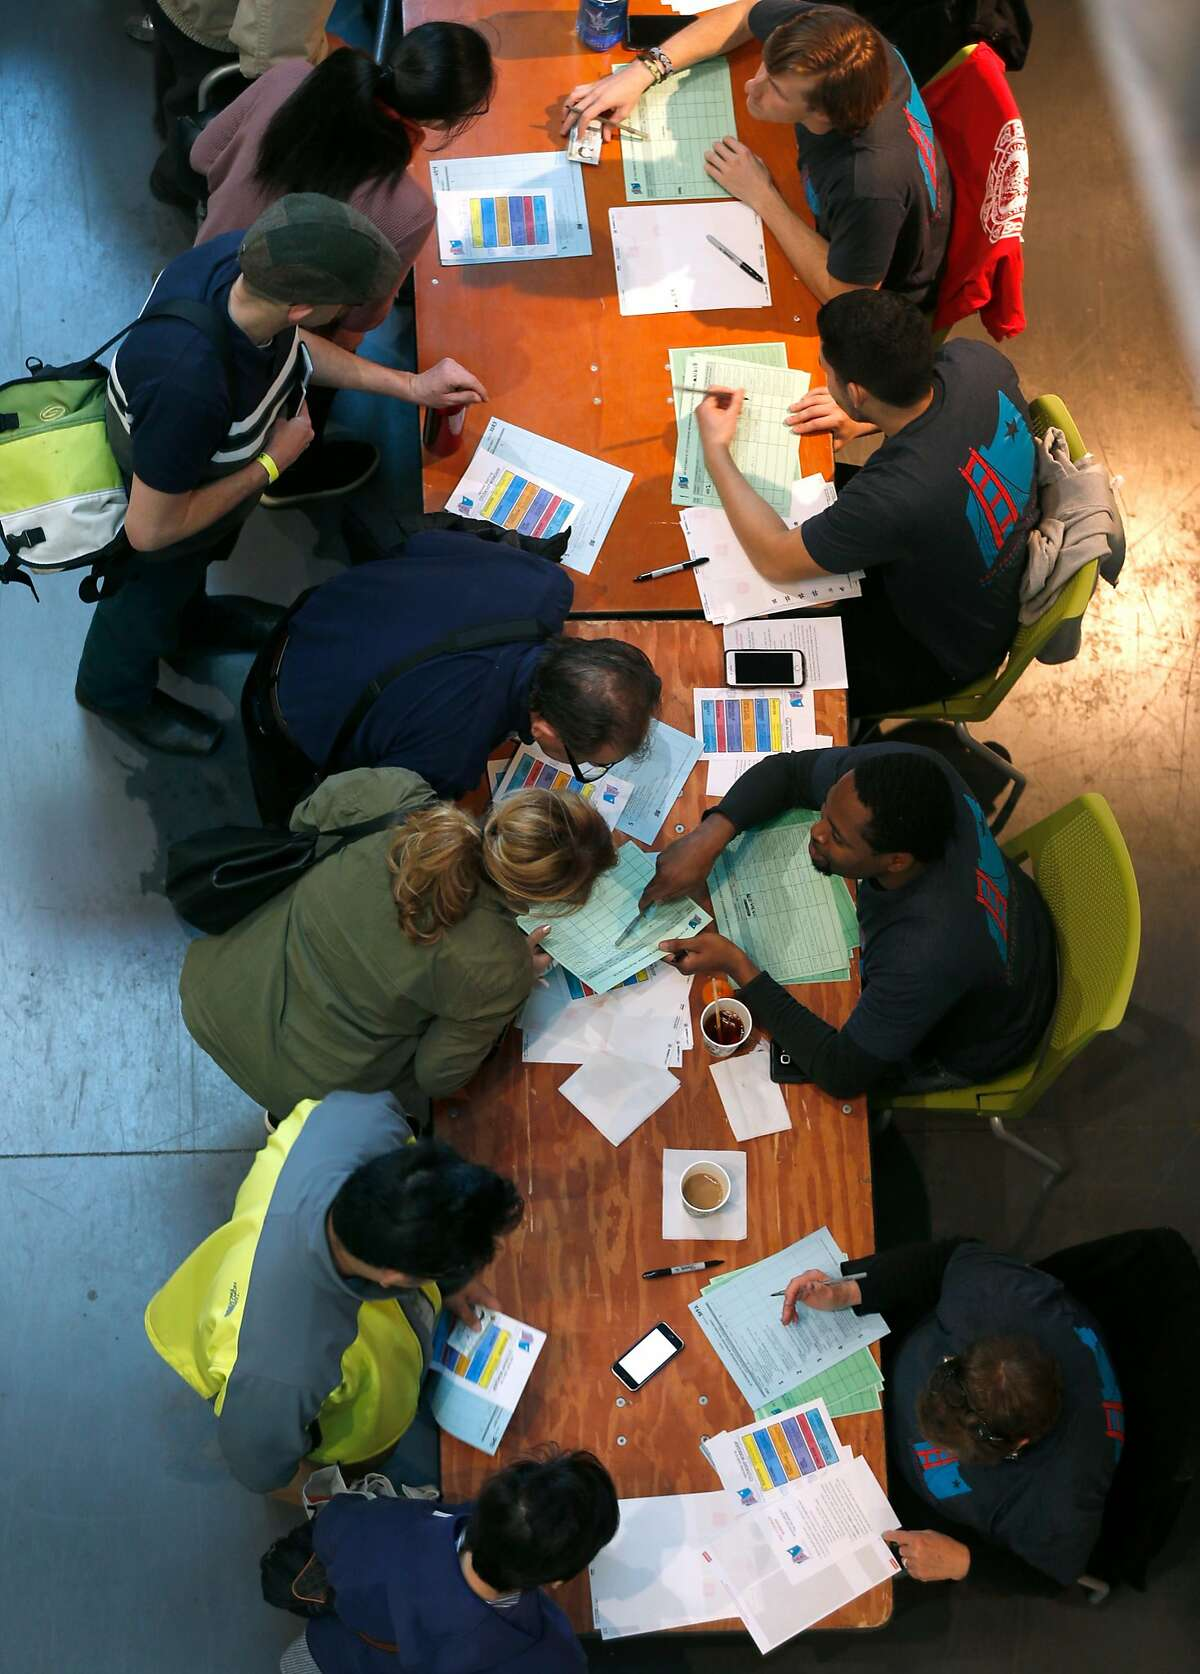 Applicants seeking U.S. citizenship (left) register for a Pathways to Citizenship workshop with volunteers at City College in San Francisco, Calif. on Saturday, Feb. 3, 2018.